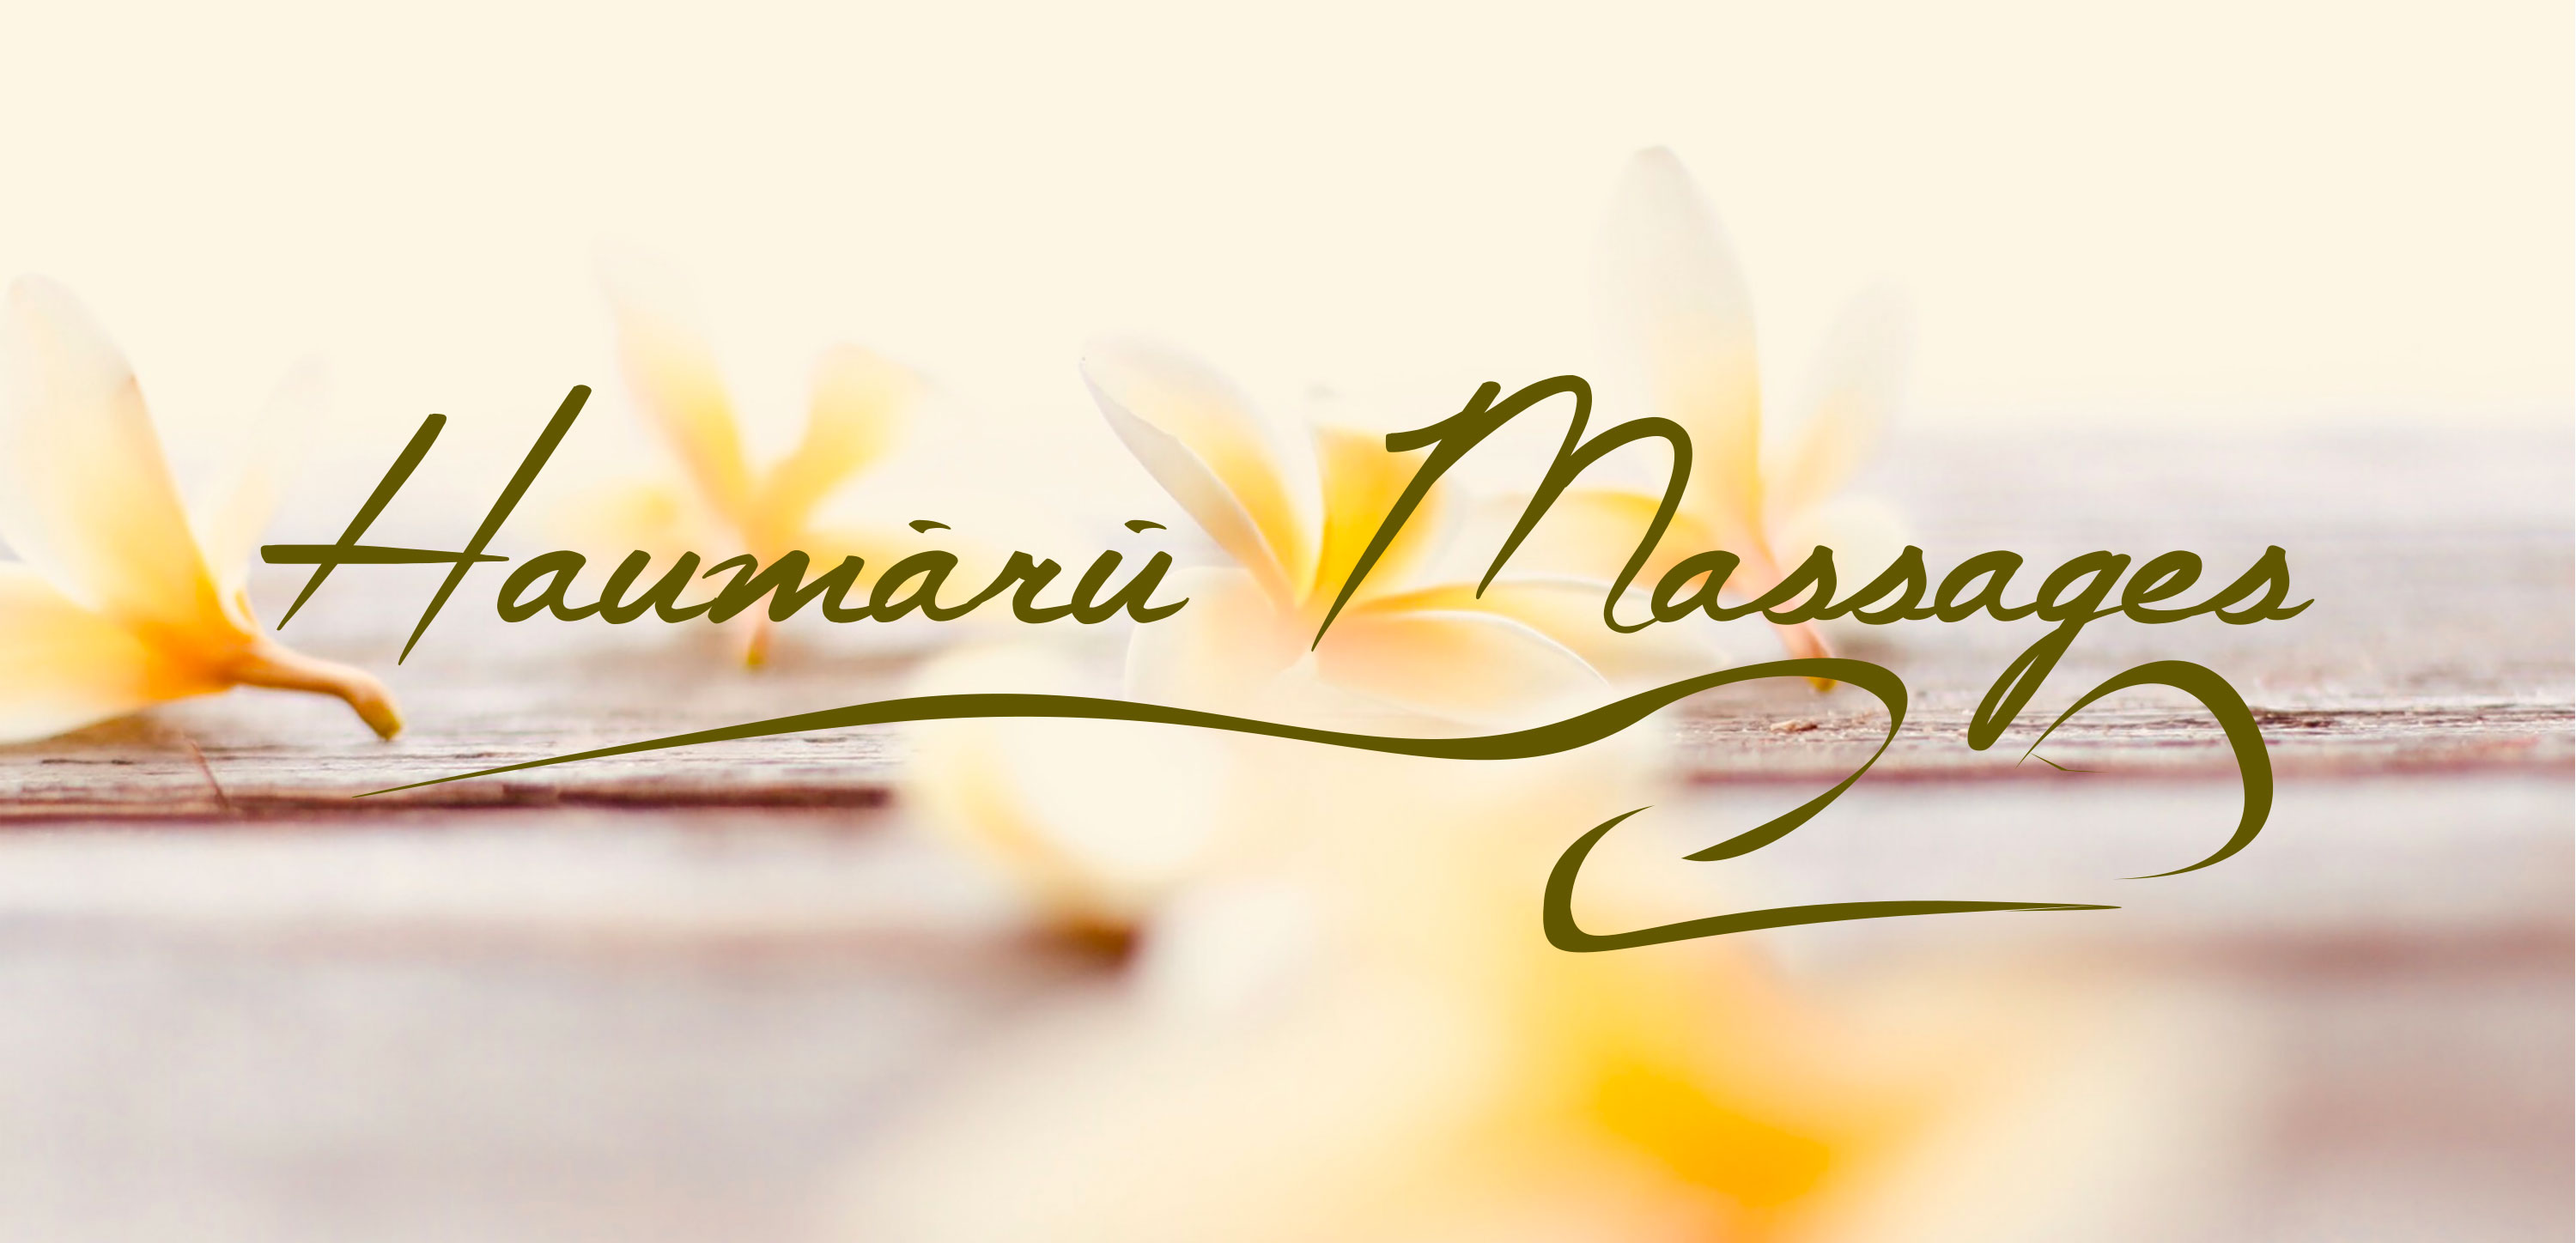 https://tahititourisme.es/wp-content/uploads/2019/09/HAUMARU-MASSAGE-1140x550.jpg